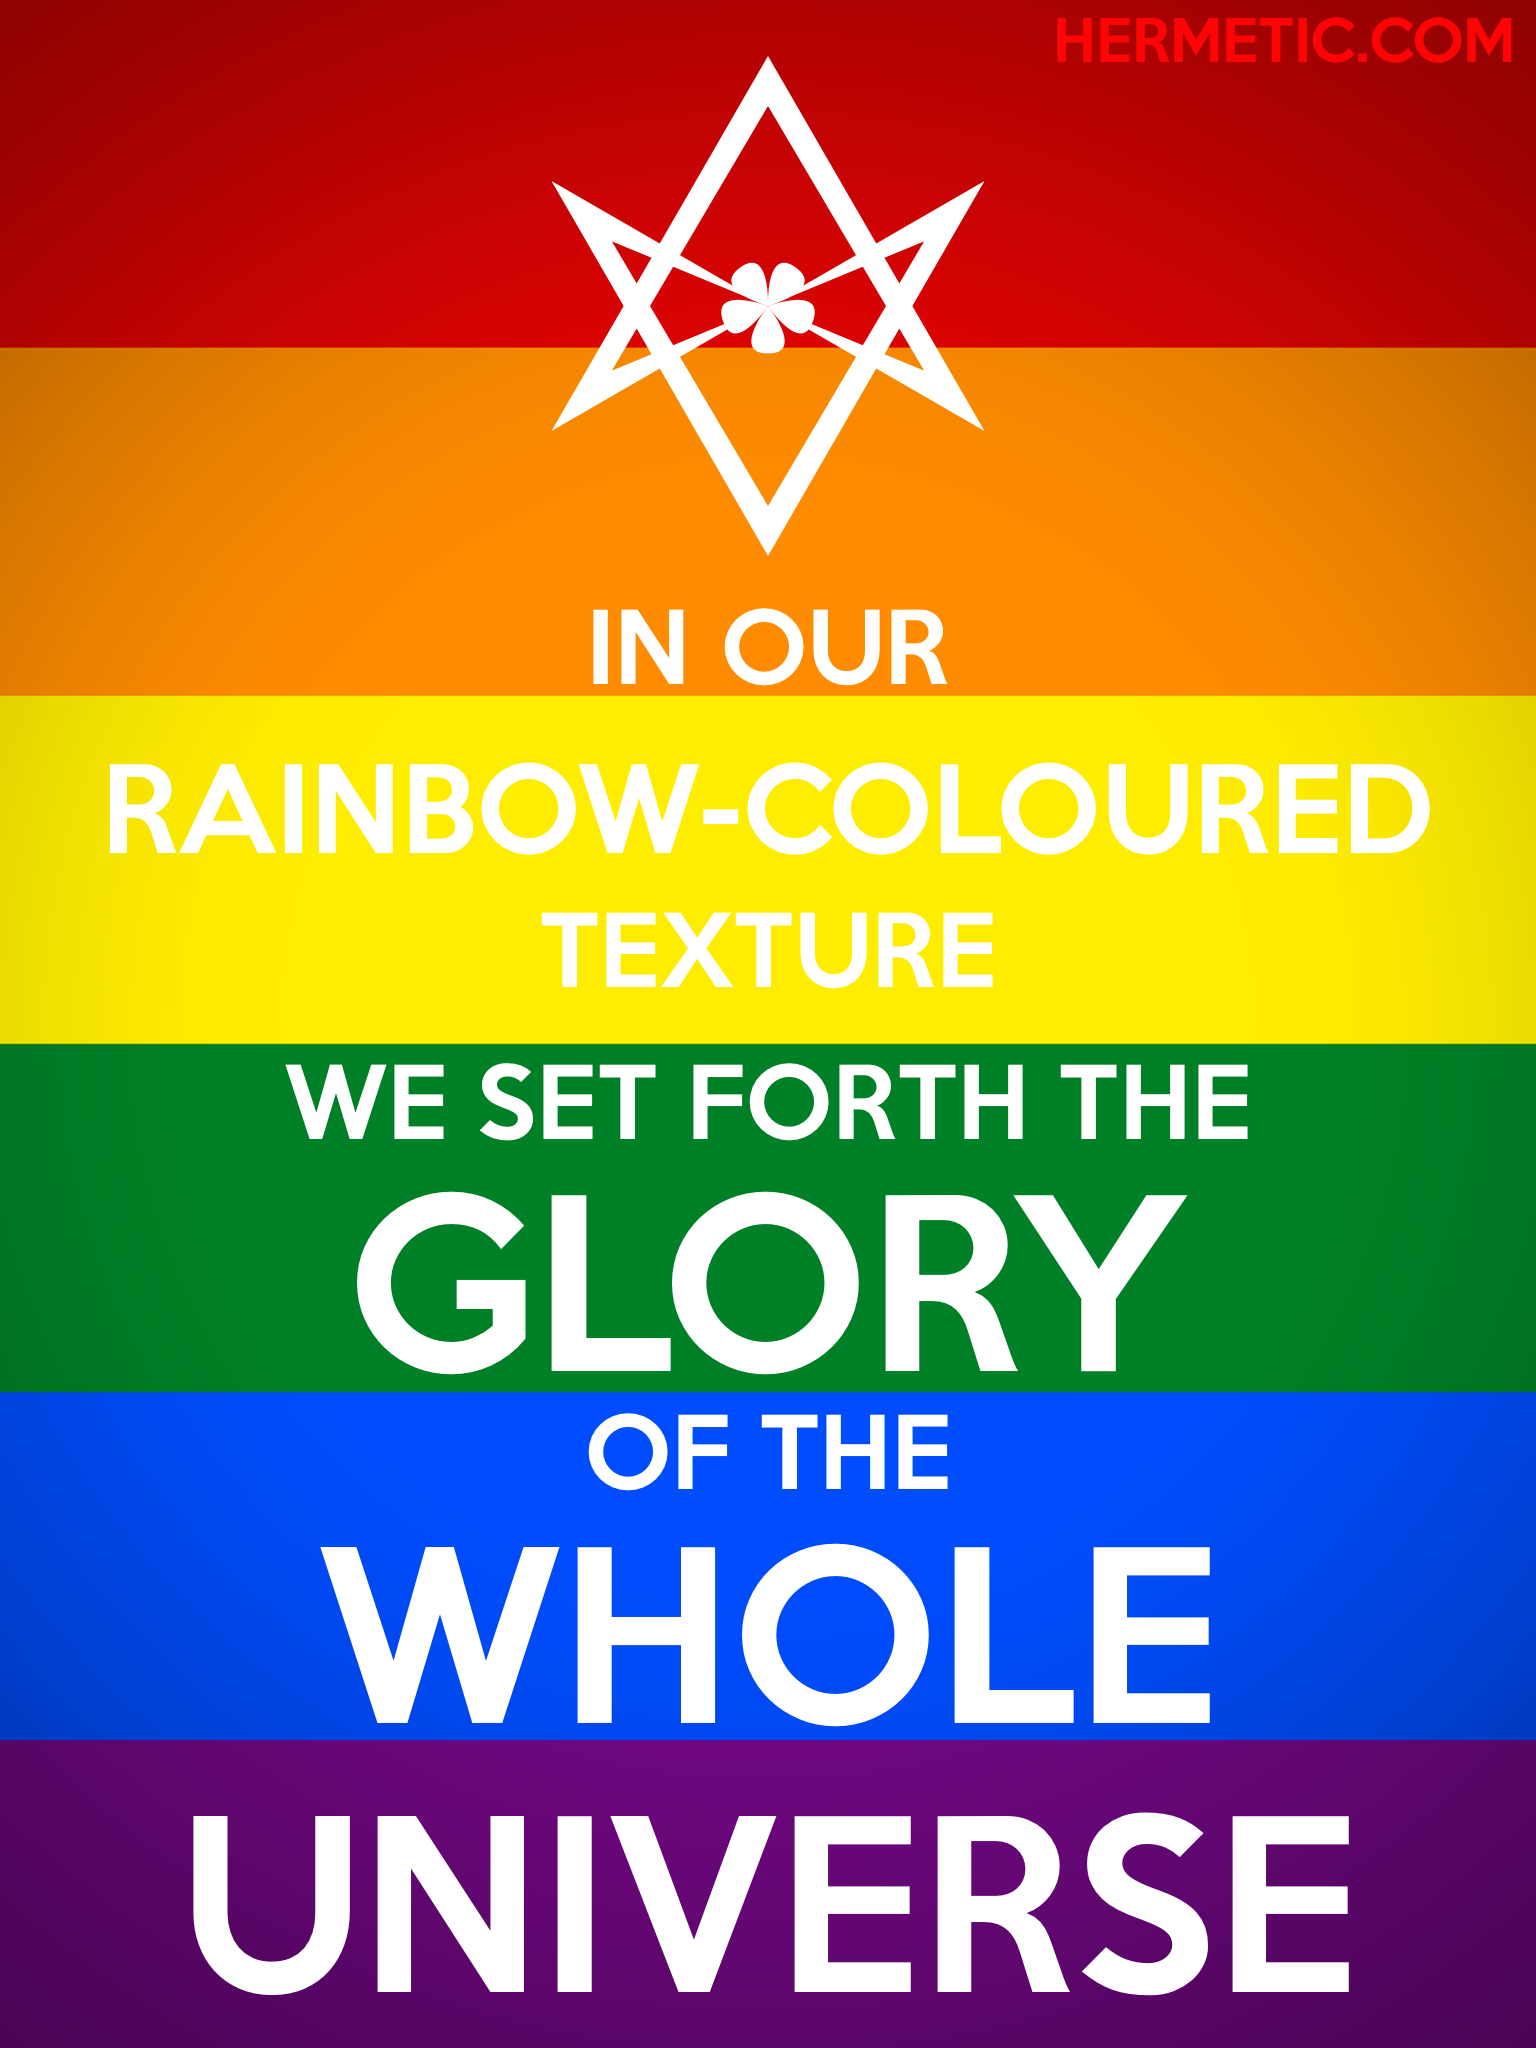 Unicursal RAINBOW-COLOURED TEXTURE Rainbow Pride propaganda poster from the Office of the Ministry of Information at Hermetic Library